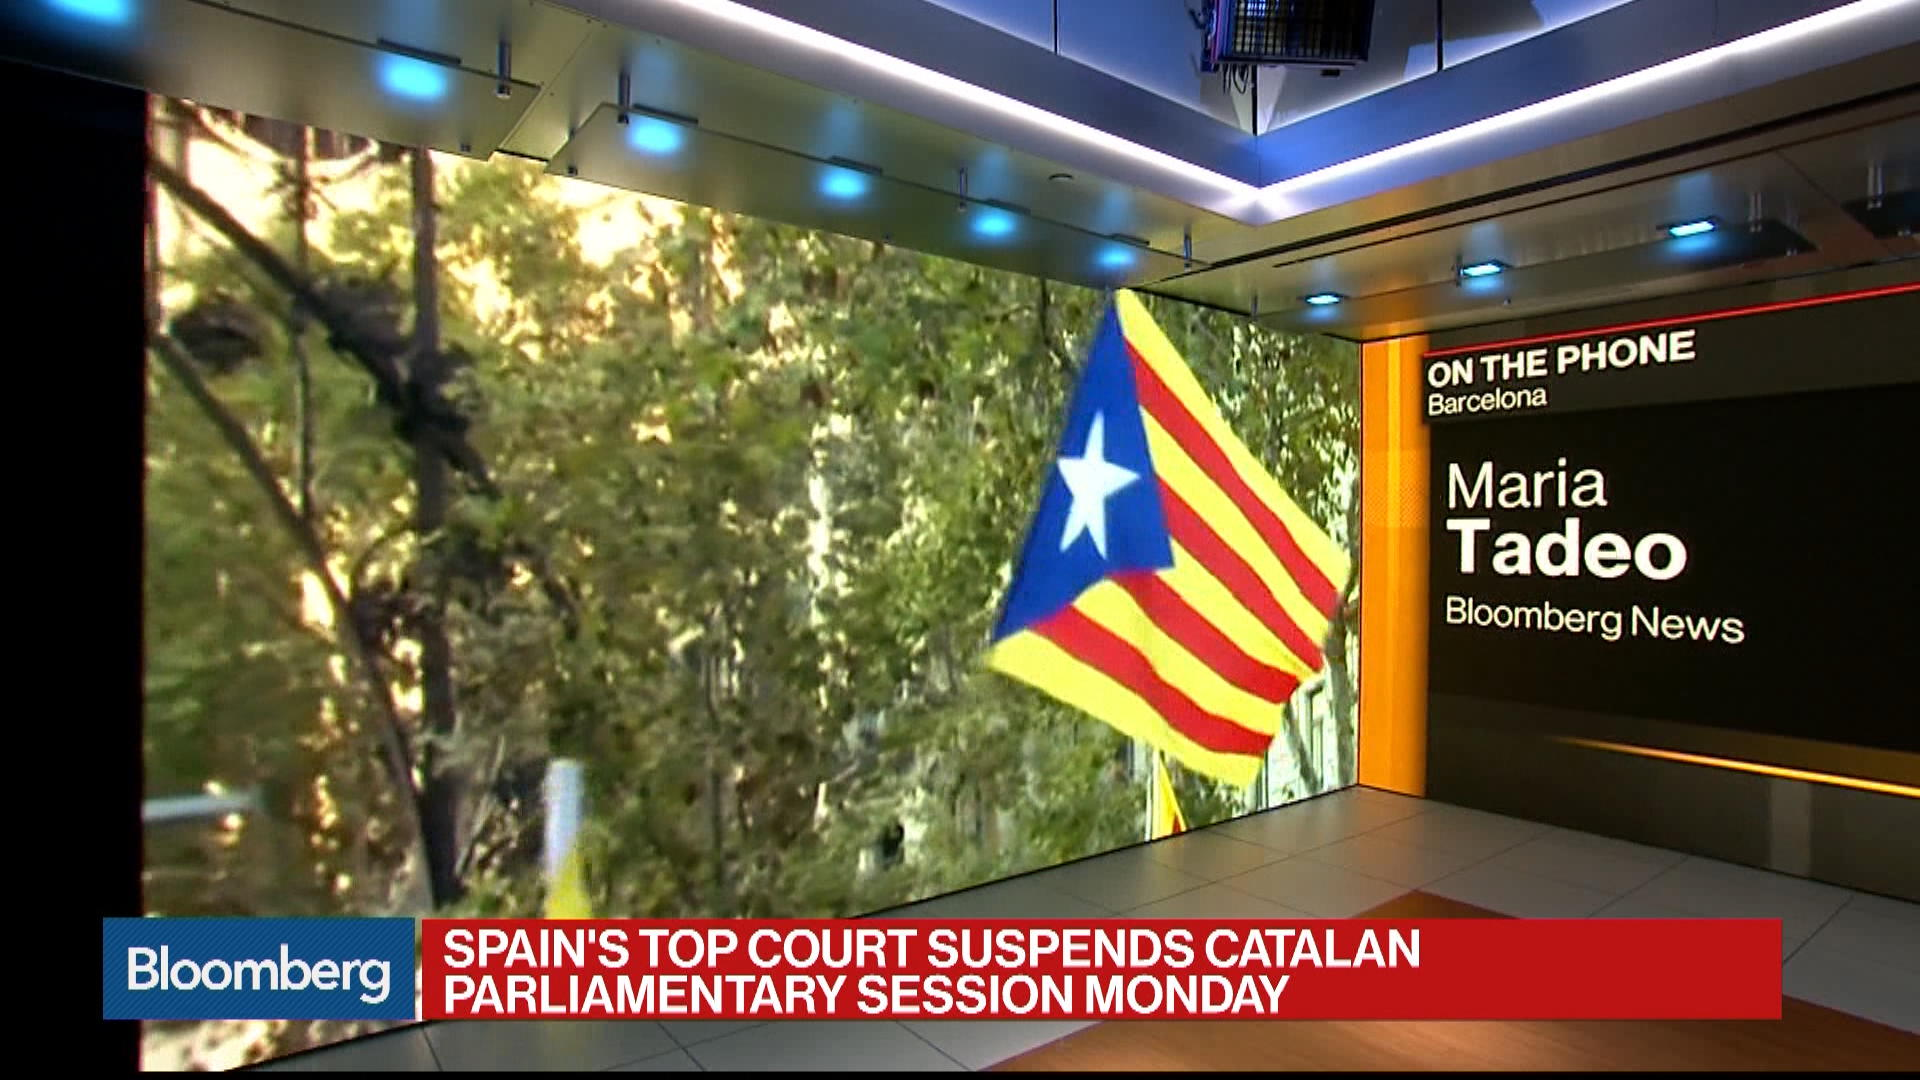 Bloomberg's Maria Tadeo reports on Spain's suspension of a Catalan parliamentary